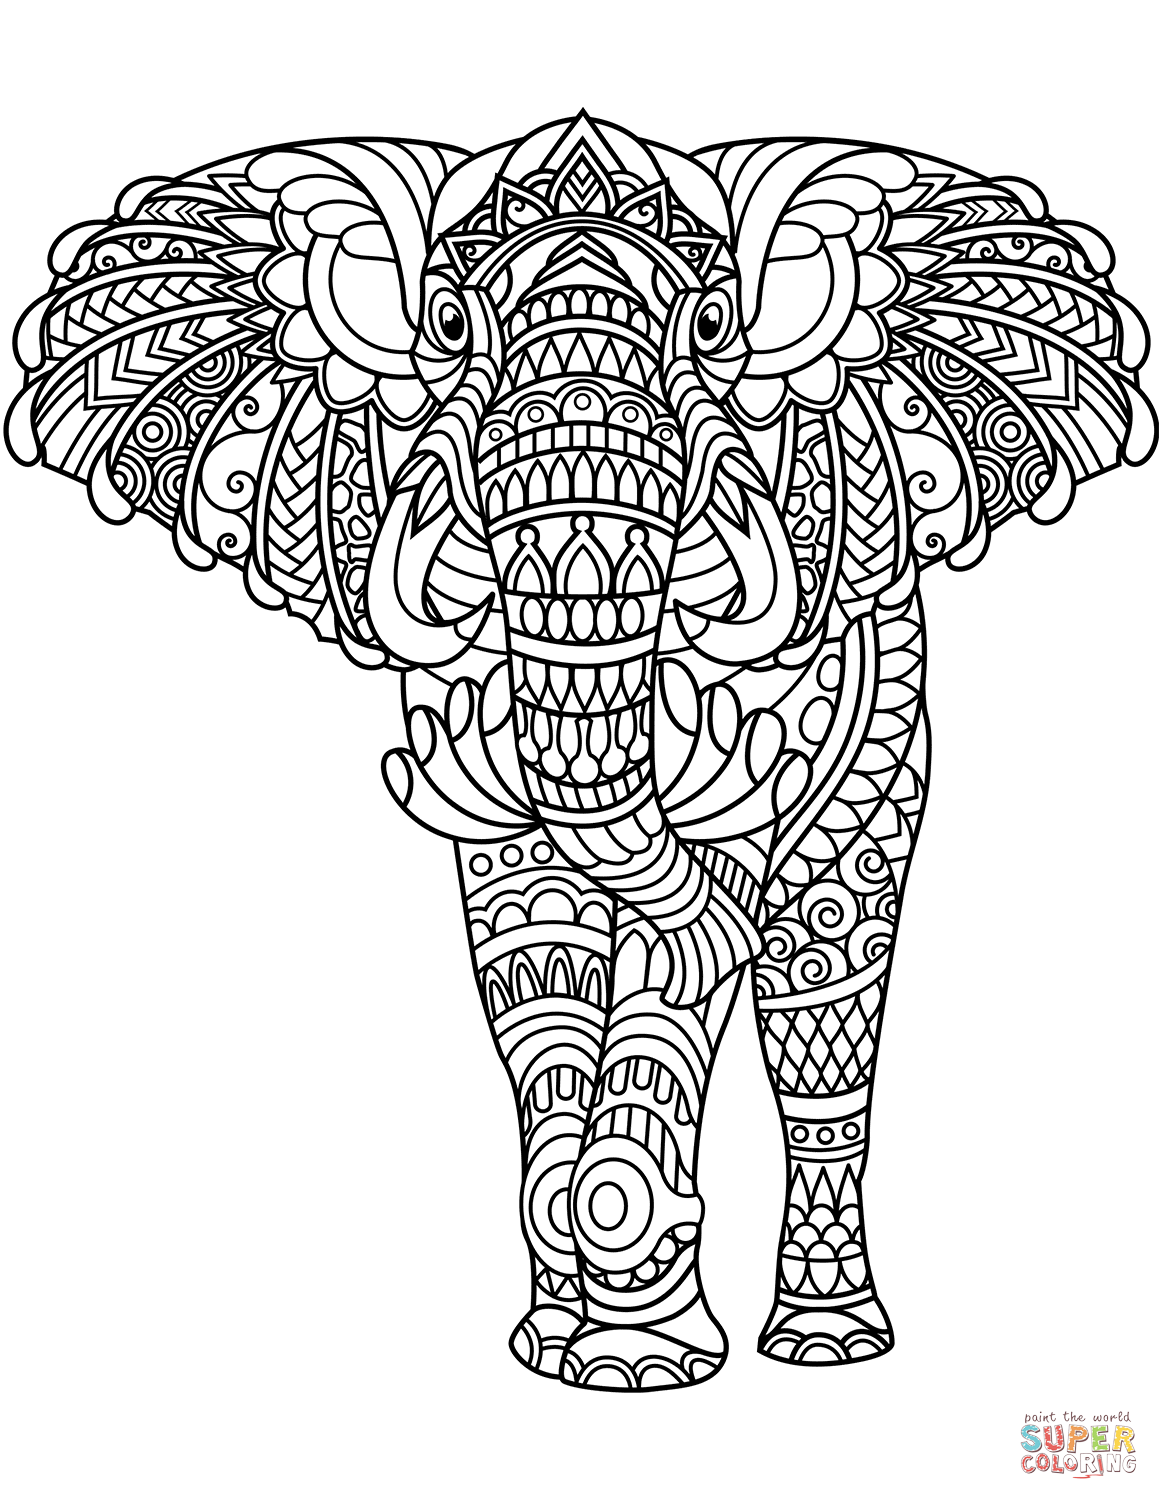 zentangle coloring pages free printable printable zentangle coloring pages free coloring home free coloring pages zentangle printable